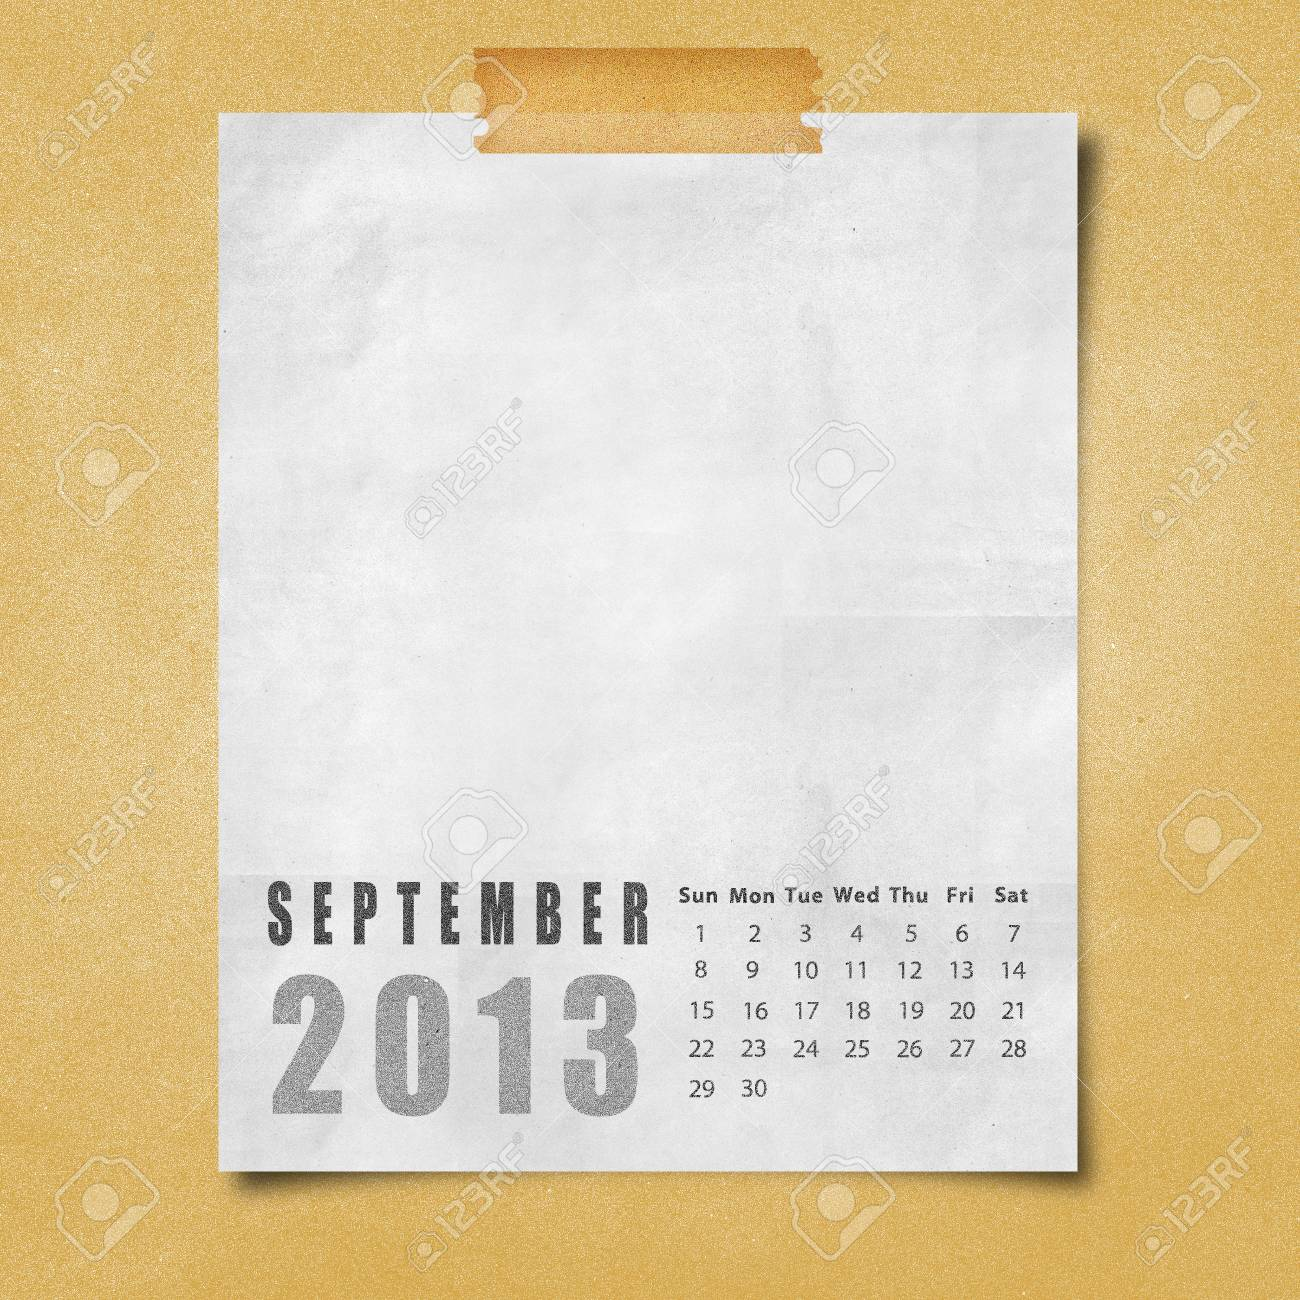 2013 year calendar September on paper board background Stock Photo - 16676870